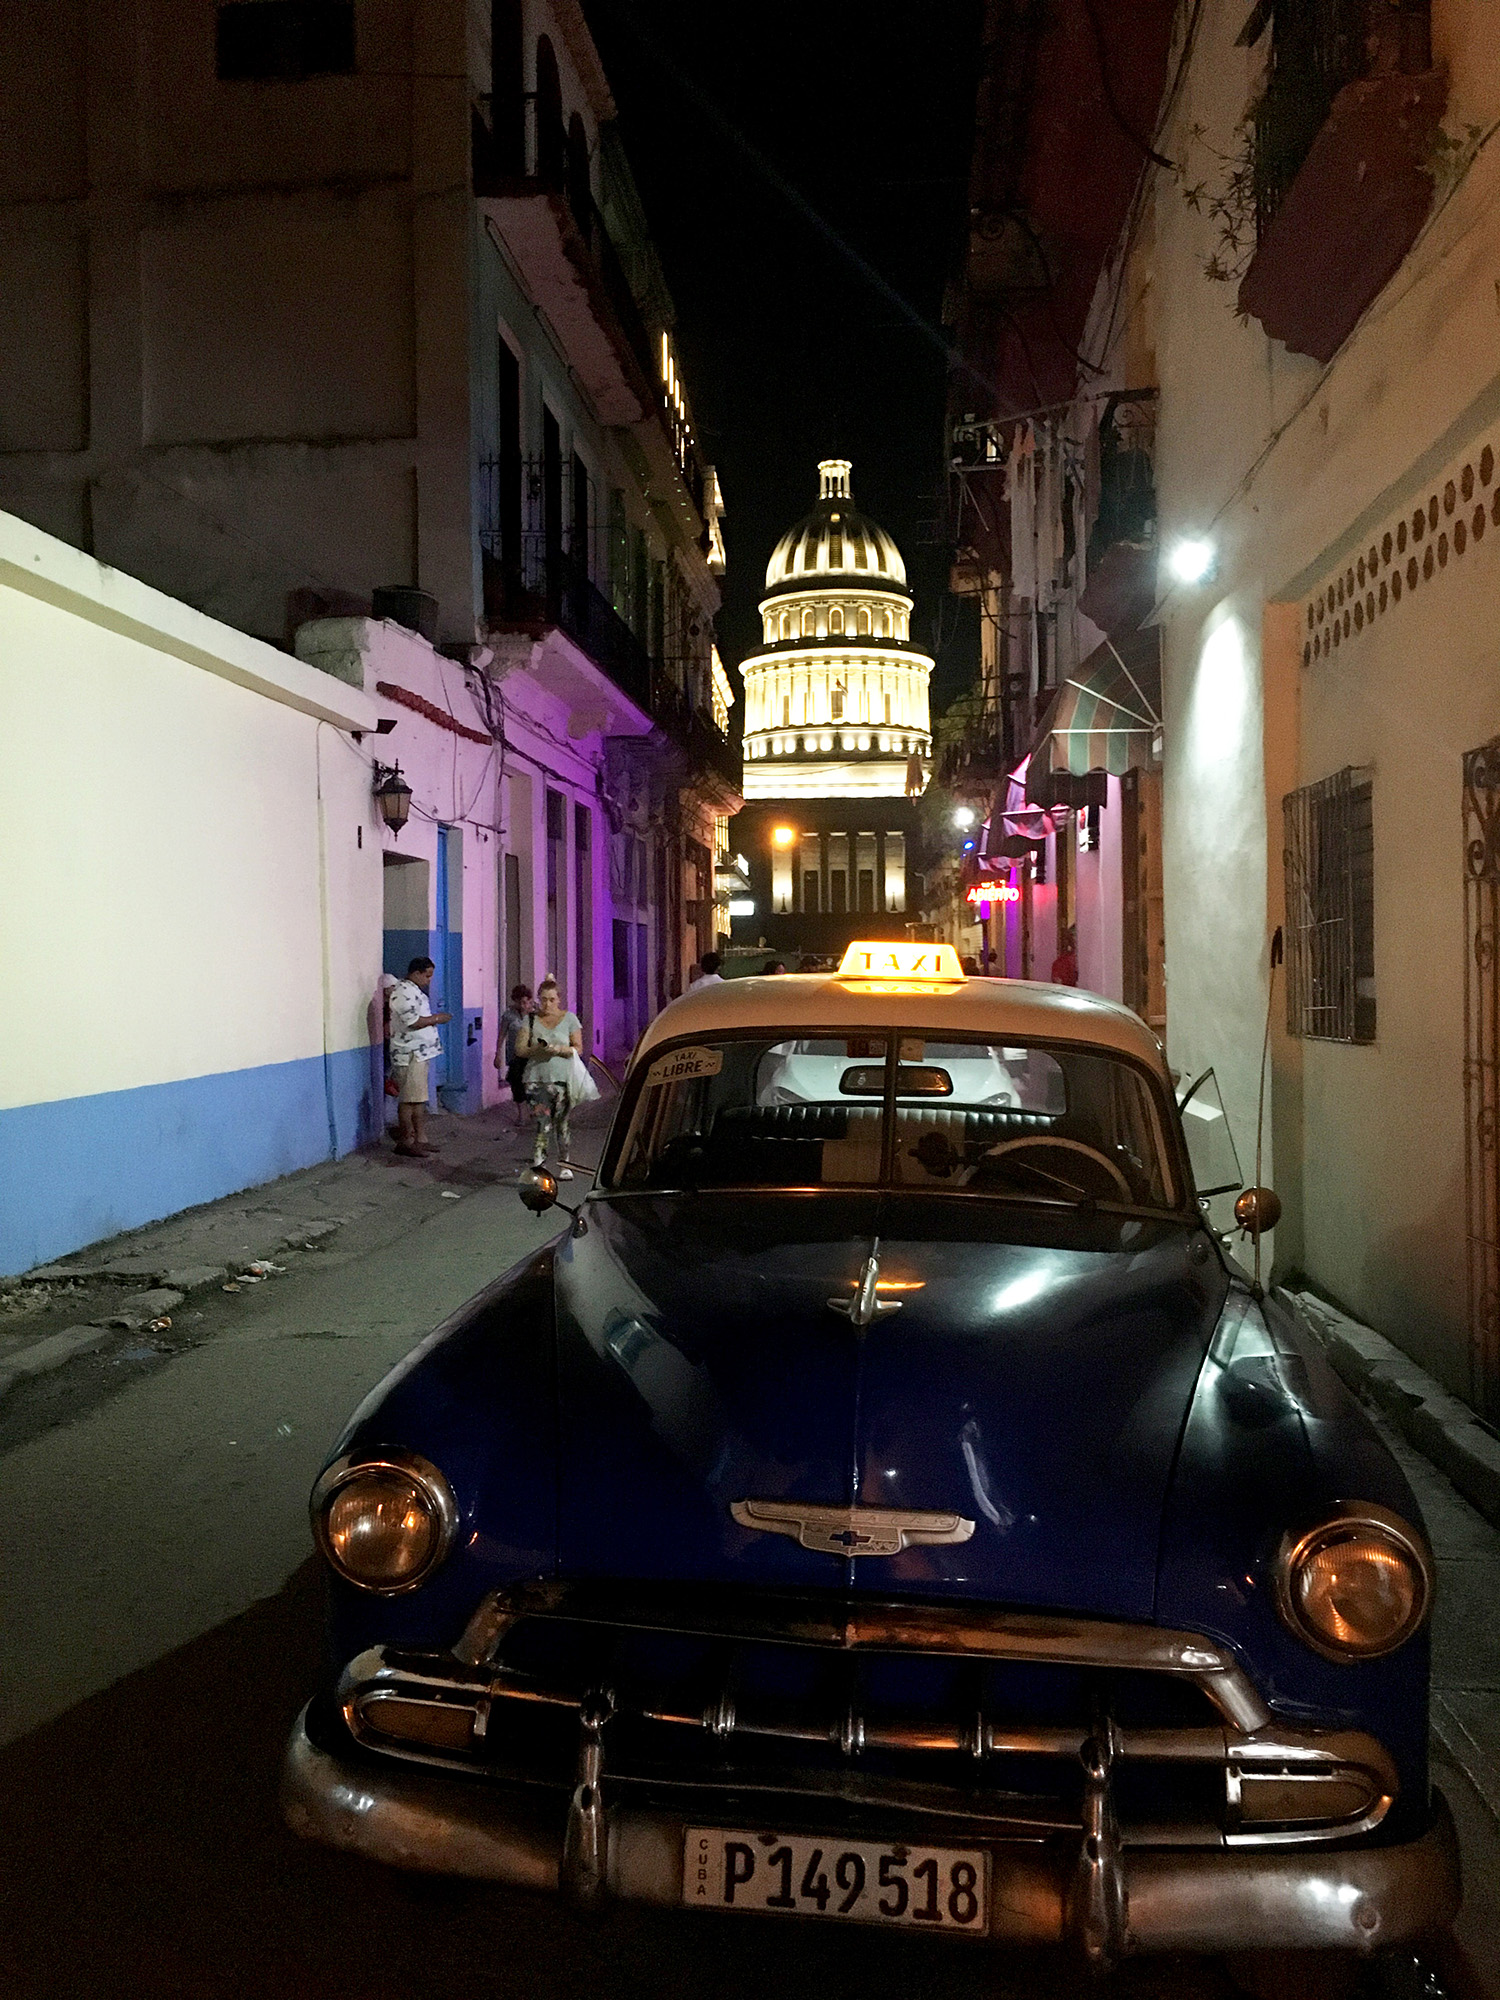 The light from El Capitolio shines on a 1950s car in Havana.